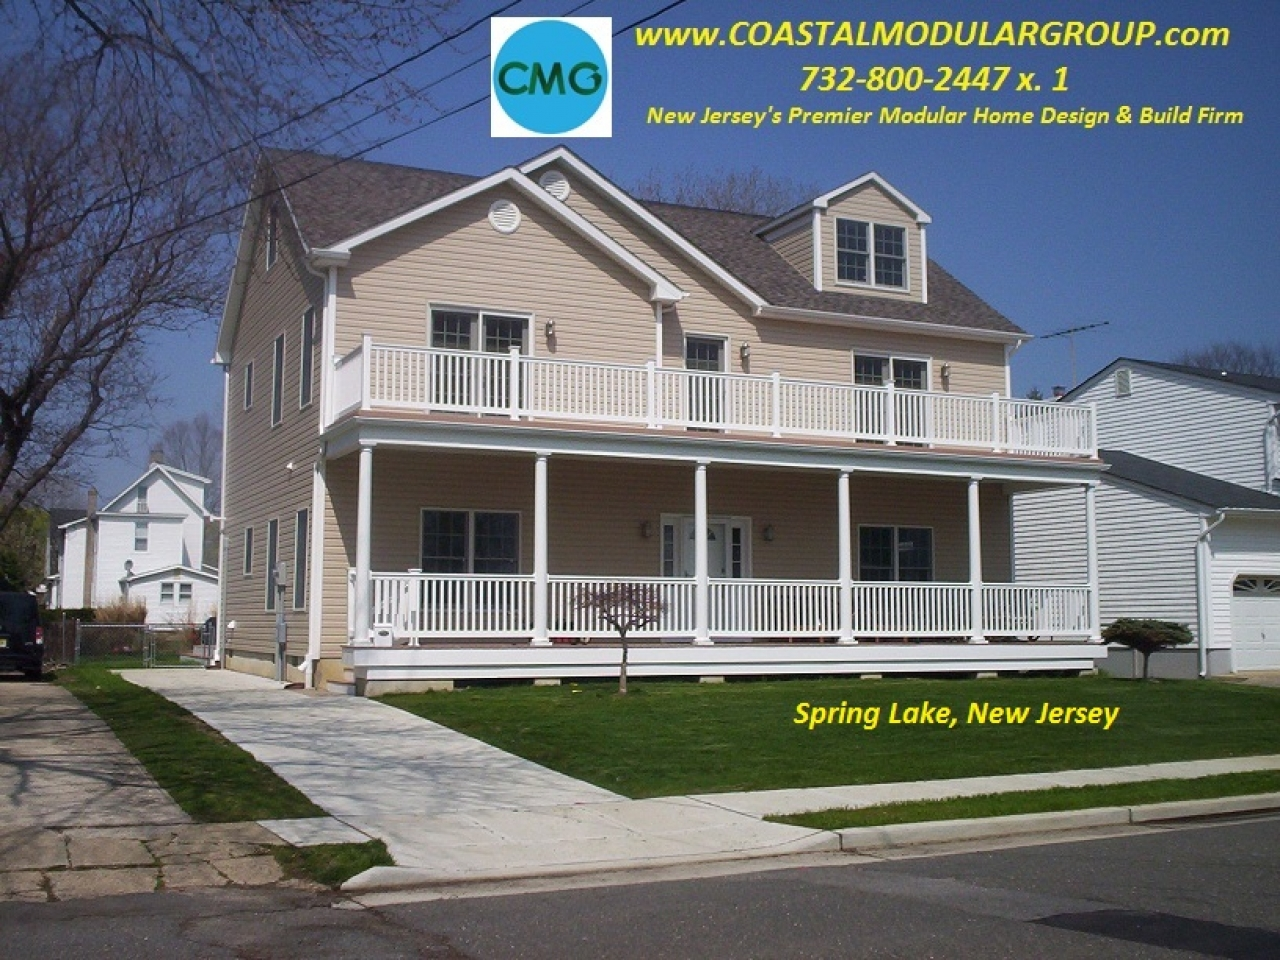 56 wide house plans html with 081d66fc9c0e9b65 Coastal Modular Home Plans Coastal Modular Homes on Home Design Kits likewise 081d66fc9c0e9b65 Coastal Modular Home Plans Coastal Modular Homes further Stone Sculpture furthermore 7ae102d8e0b4249a Small House Plans Craftsman Bungalow Ranch Style Bungalow Plans likewise House Plans Contemporary.